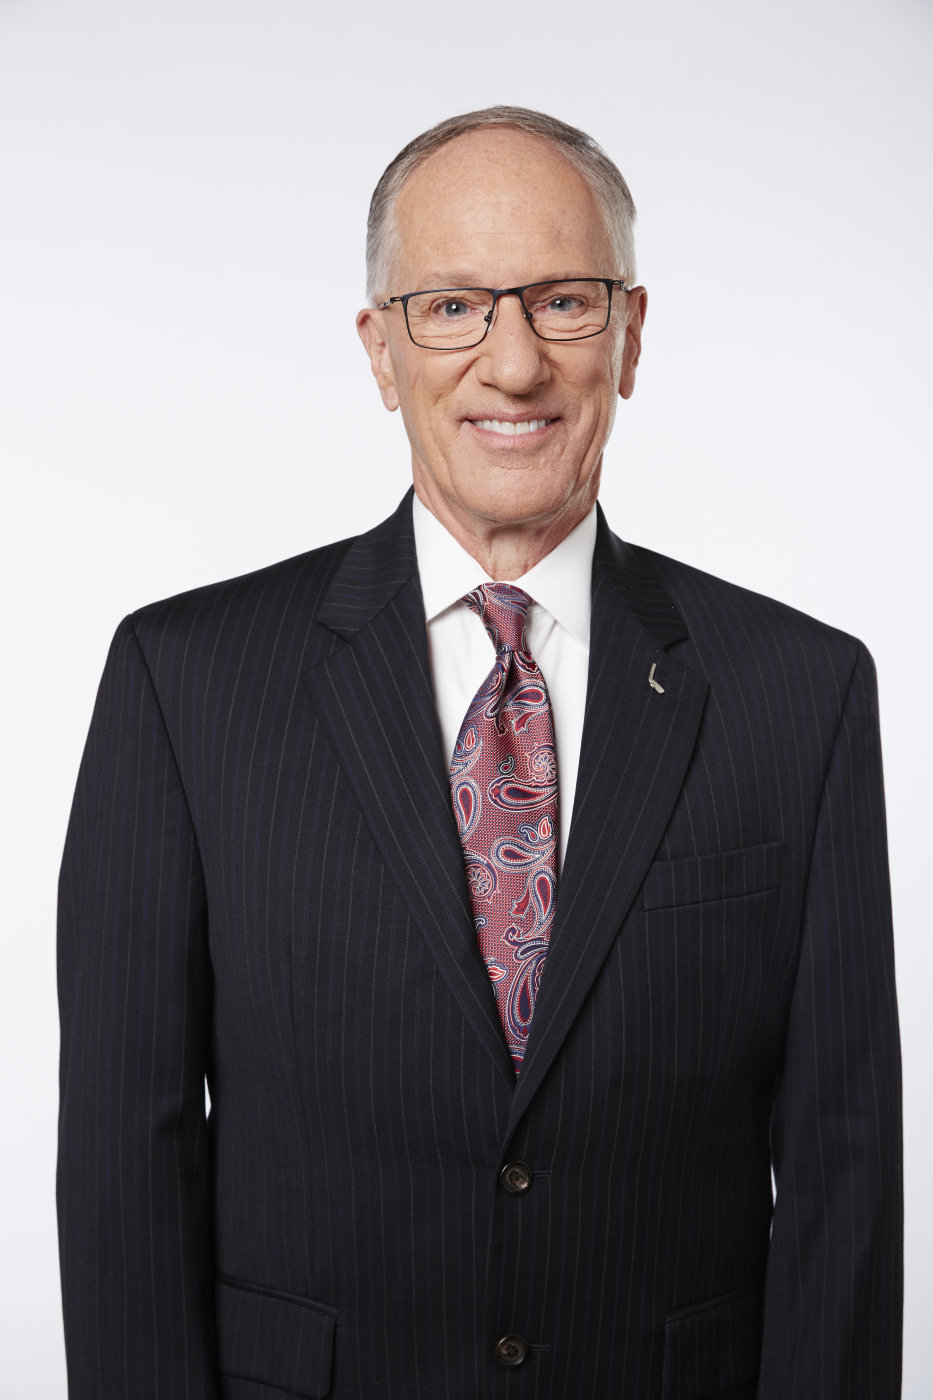 NATIONAL HOCKEY LEAGUE -- Pictured: Mike Doc Emrick, NHL Play-by-Play, NBC and NBCSN